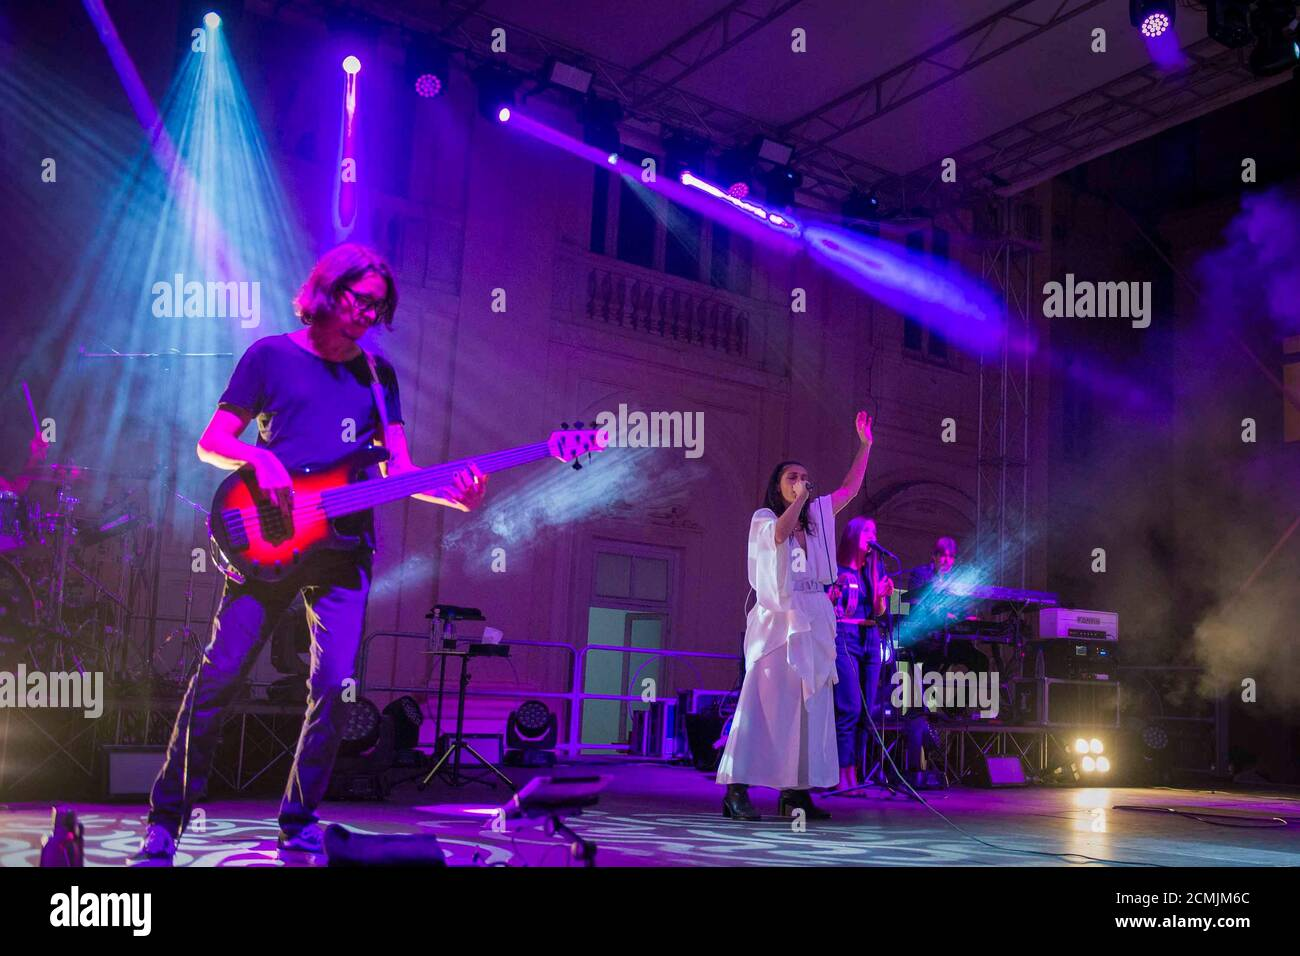 Napoli, Italy. 15th Sep, 2020. Elisa live at the Belvedere of San Leucio in Caserta, Italy on September 15, 2020. Elisa Toffoli is an Italian singer-songwriter, composer, multi-instrumentalist, musician and record producer. (Photo by Massimo Solimene/Pacific Press/Sipa USA) Credit: Sipa USA/Alamy Live News Stock Photo